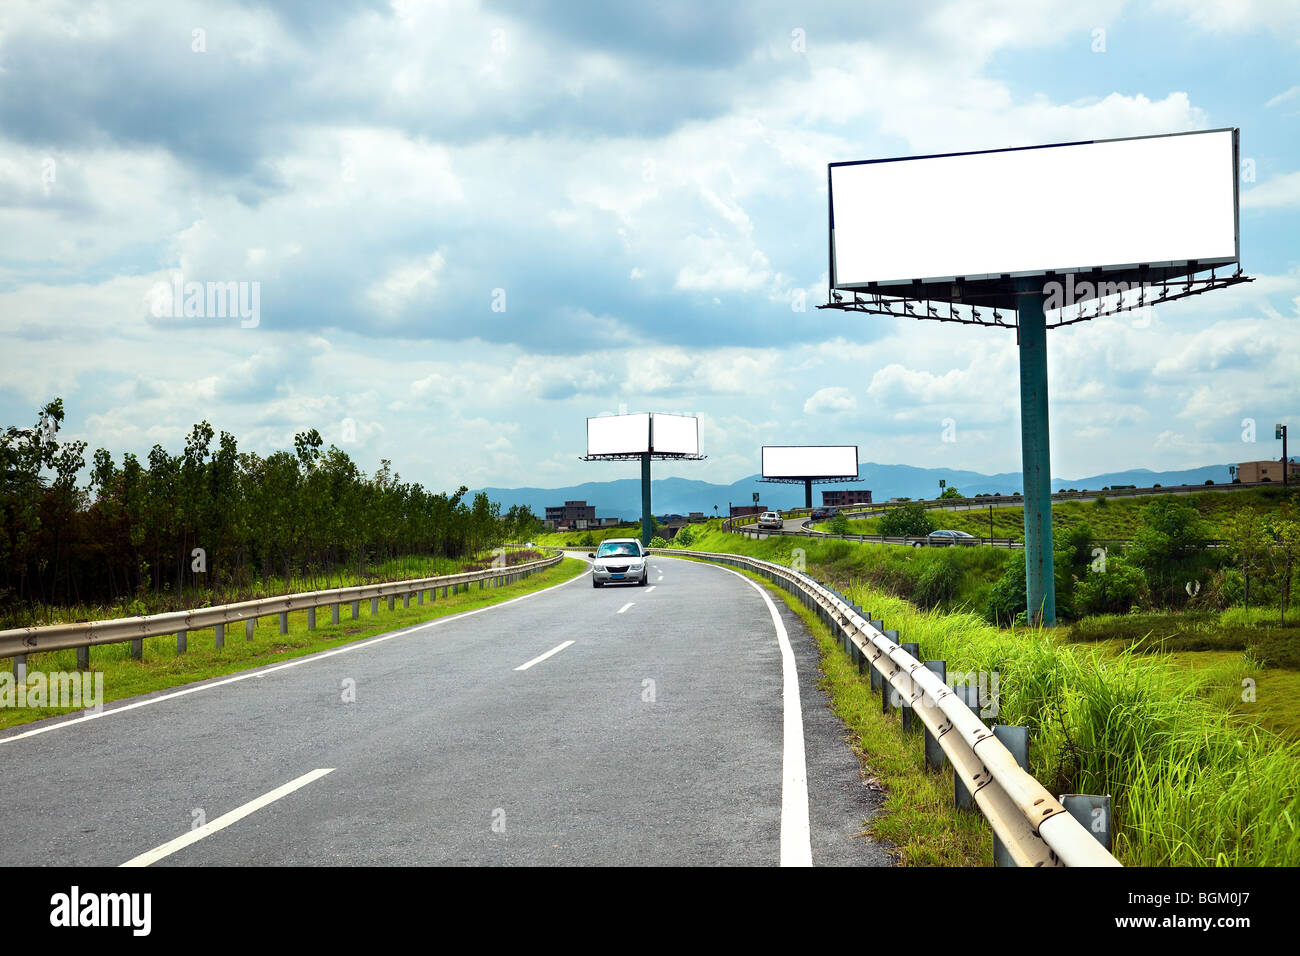 the billboard ande road outdoor. - Stock Image